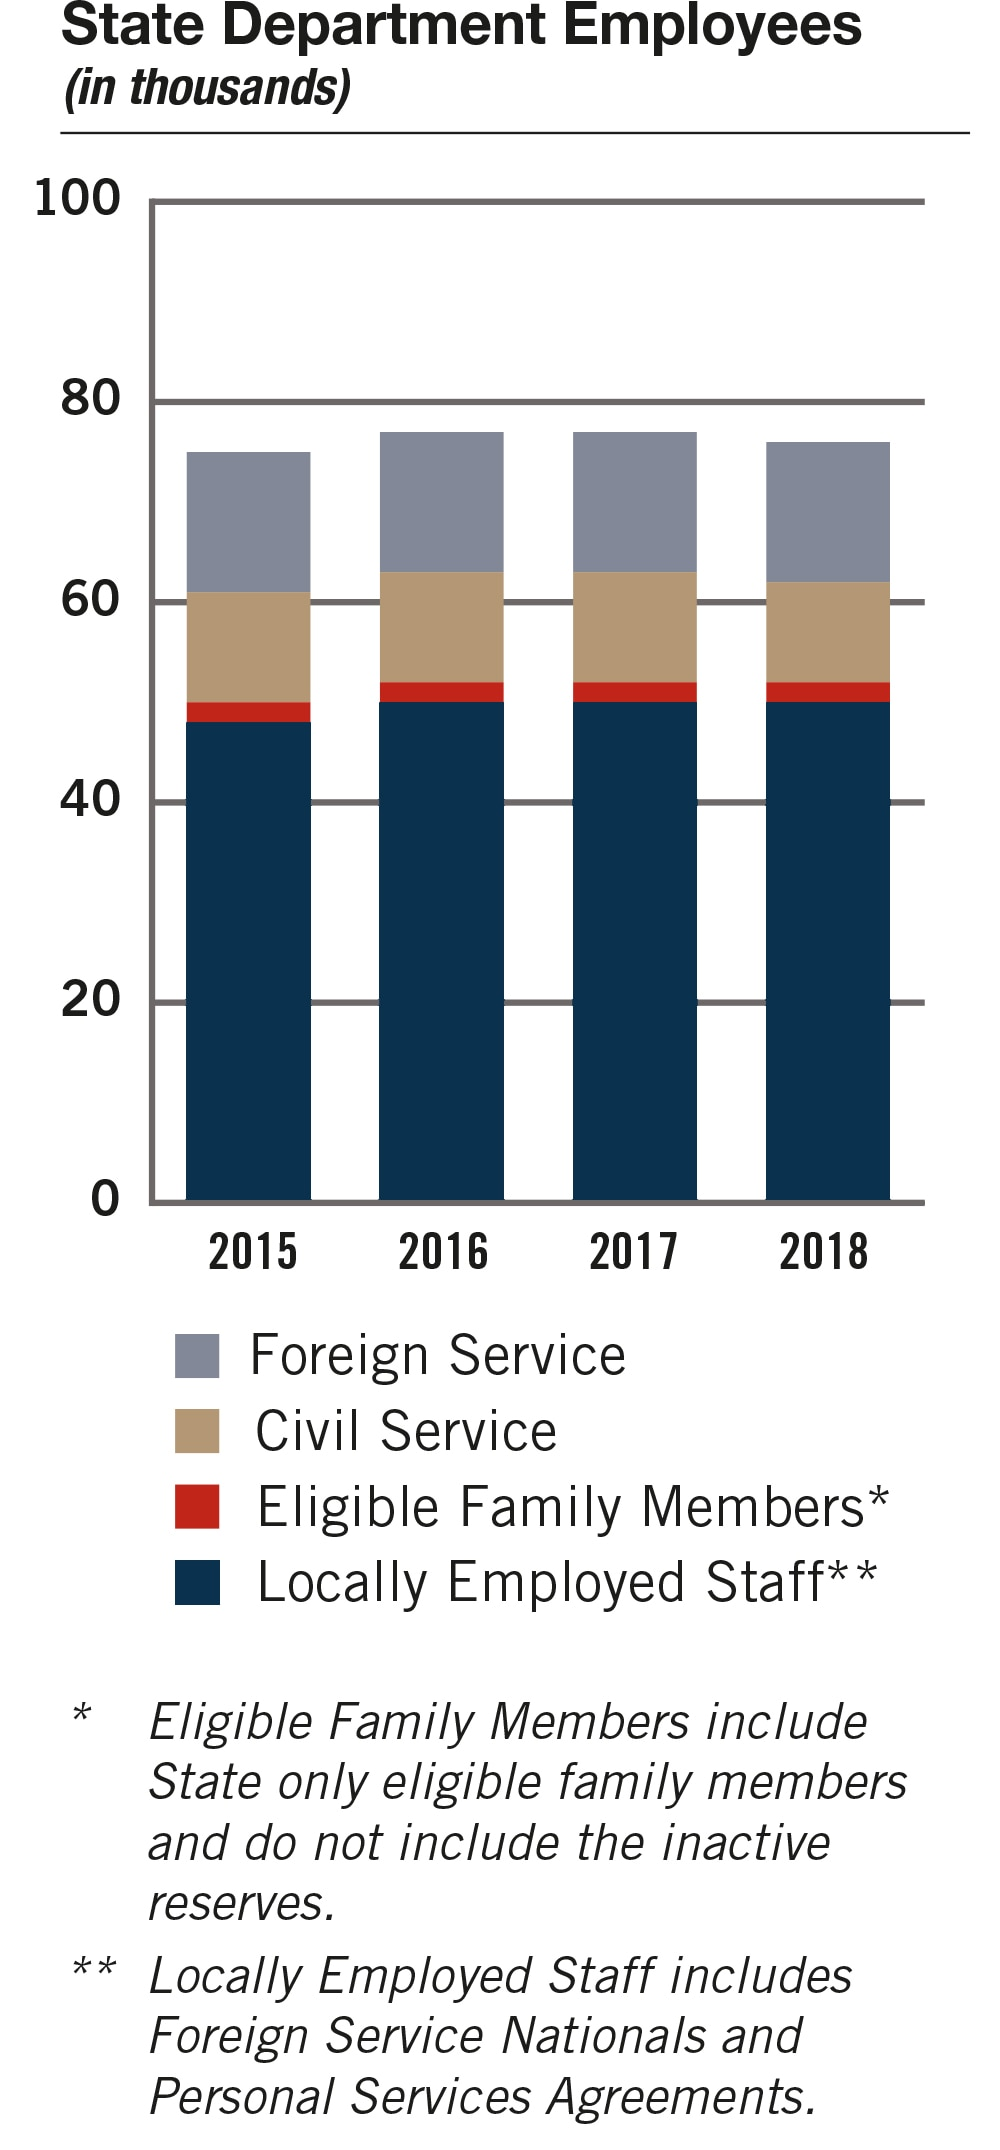 Bar chart of State employees for 2015-2018 broken down by Foreign Service (FS), Civil Service (CS), Eligible Family Members(EFMs) (see Note 1) and Locally Employed Staff (LE Staff) (see Note 2). In thousands: FY 2015: FS: 14; CS: 11; EFMs: 2; LE Staff: 48. FY 2016: FS: 14; CS: 11; EFMs: 2; LE Staff: 50. FY 2017: FS: 14; CS: 11; EFMs: 2; LE Staff: 50. FY 2018: FS: 14; CS: 10; EFMs: 2; LE Staff: 50. Notes: 1. Eligible Family Members include State only eligible family members and do not include the inactive reserves. 2. Locally Employed Staff includes Foreign Service Nationals and Personal Services Agreements.